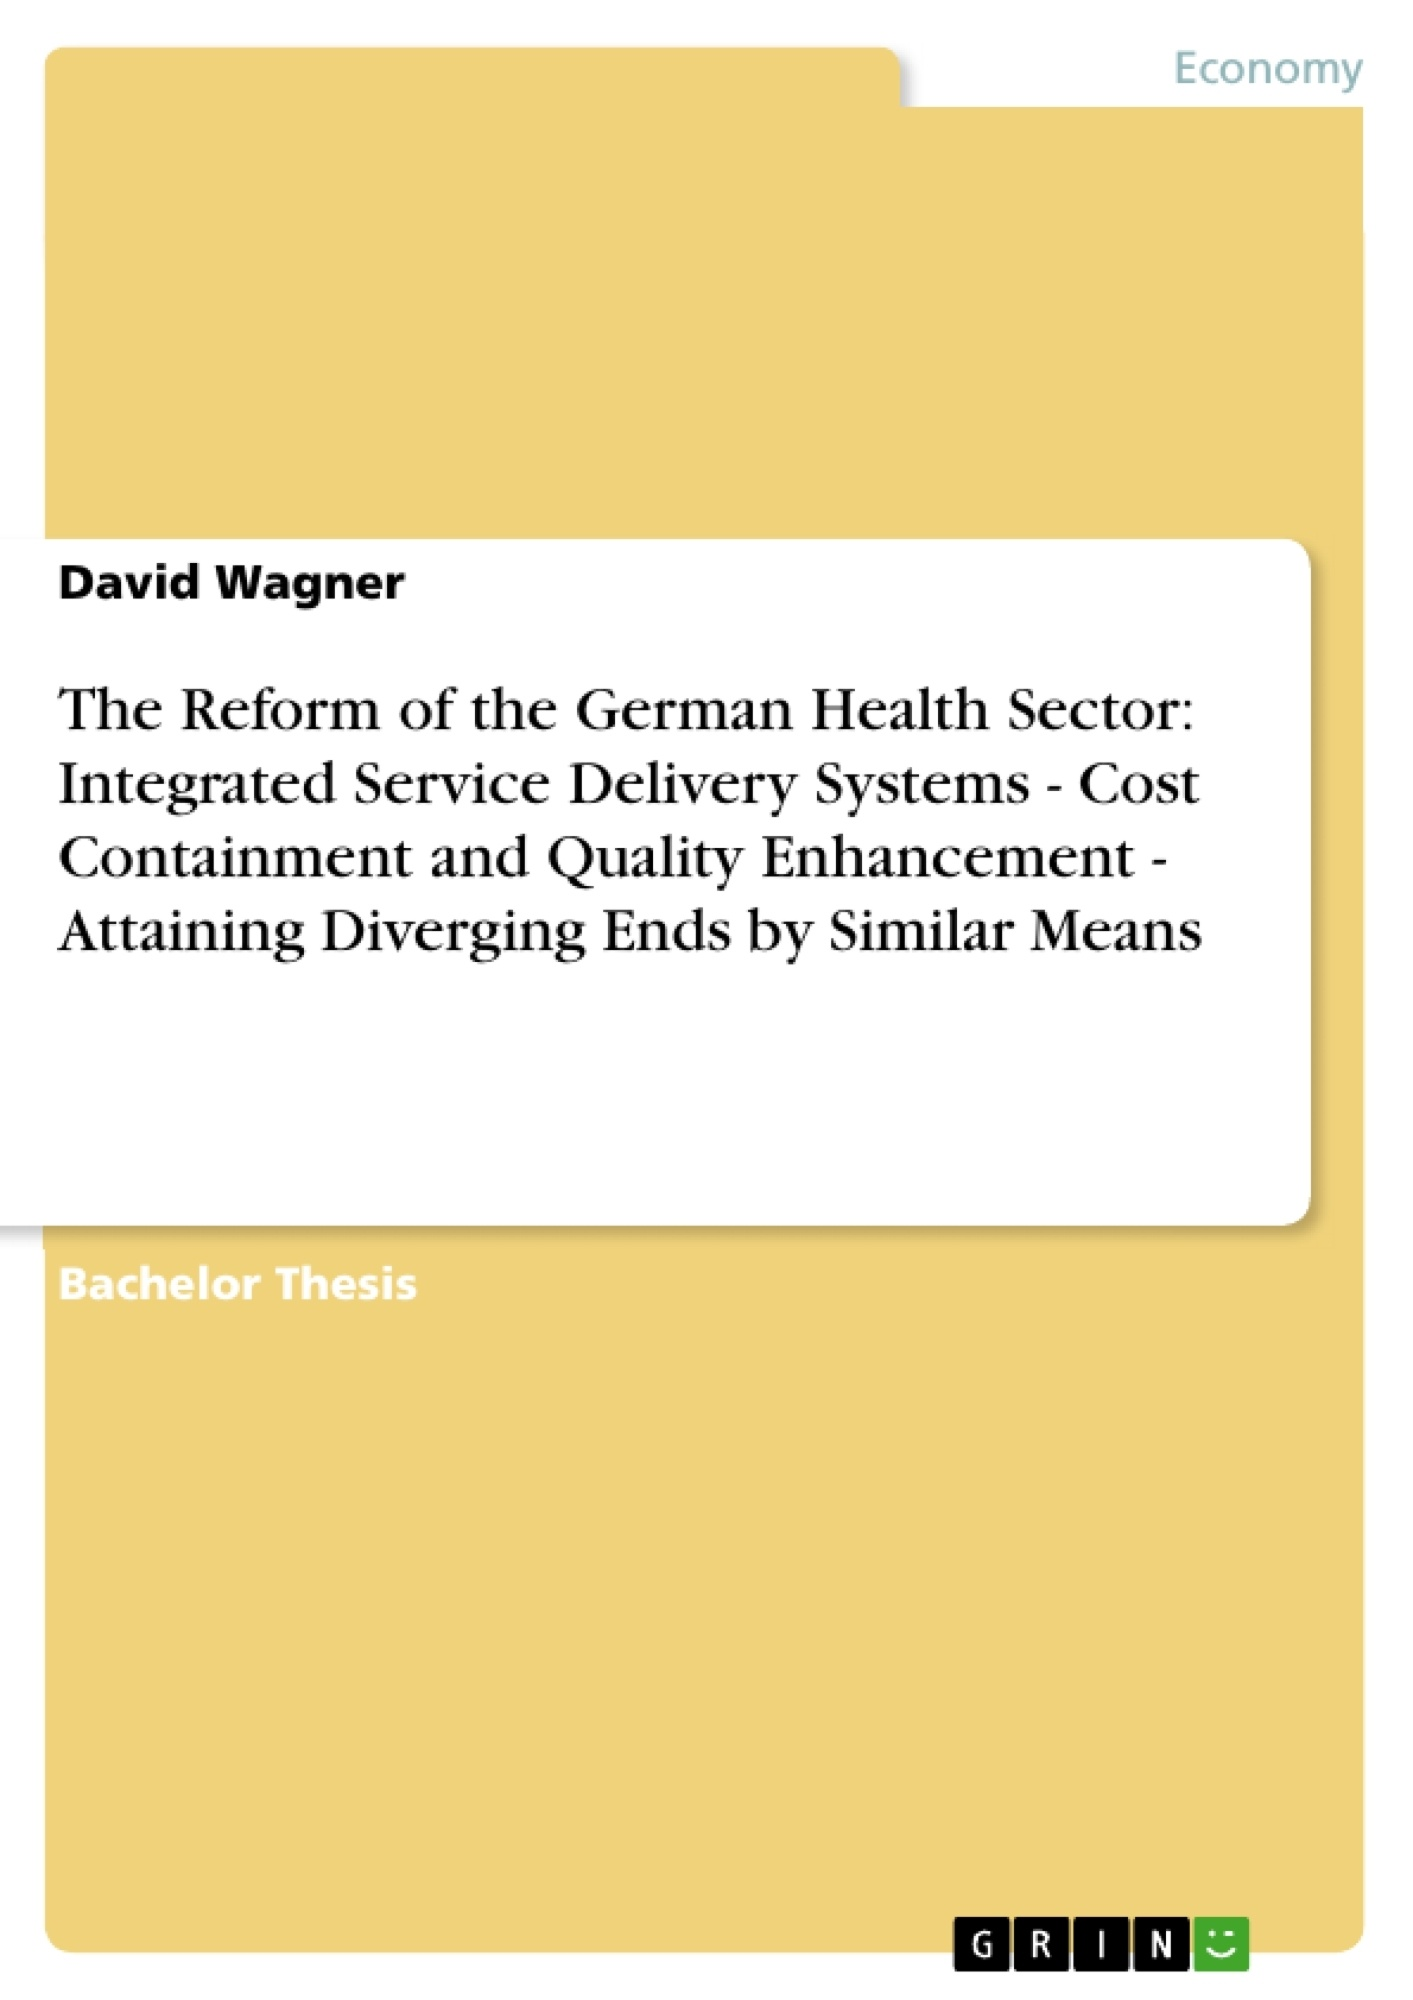 Title: The Reform of the German Health Sector: Integrated Service Delivery Systems - Cost Containment and Quality Enhancement - Attaining Diverging Ends by Similar Means